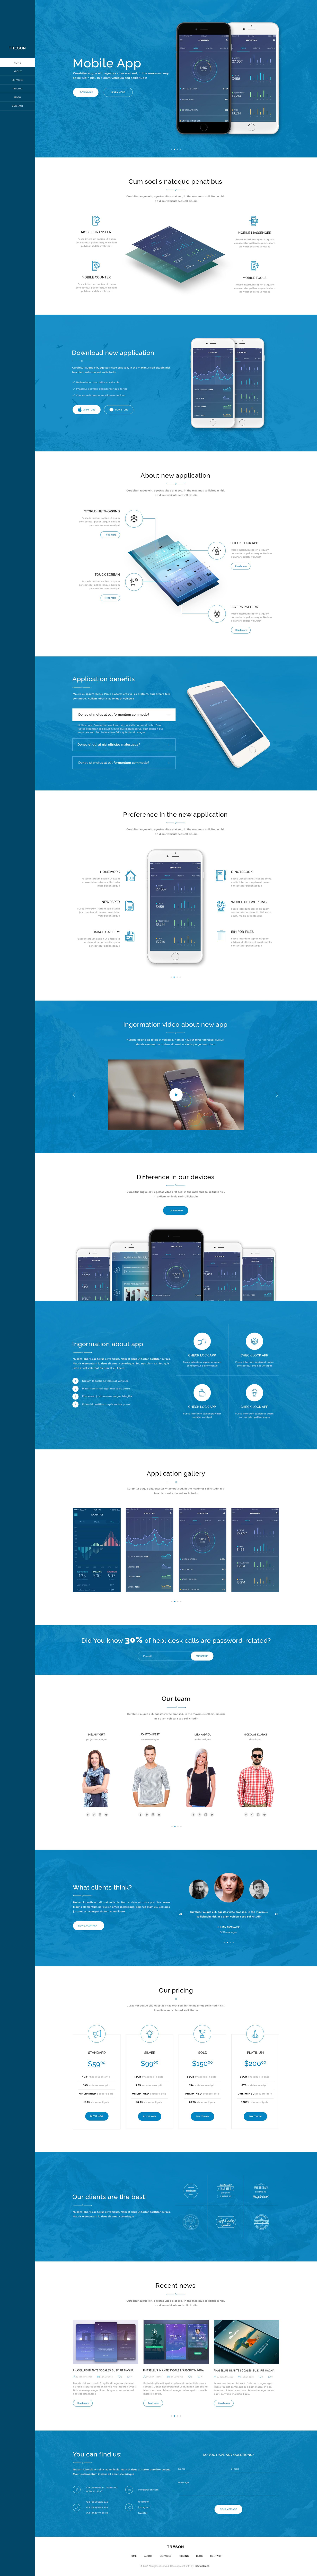 treson one page agency app startup psd template wedding djfirst